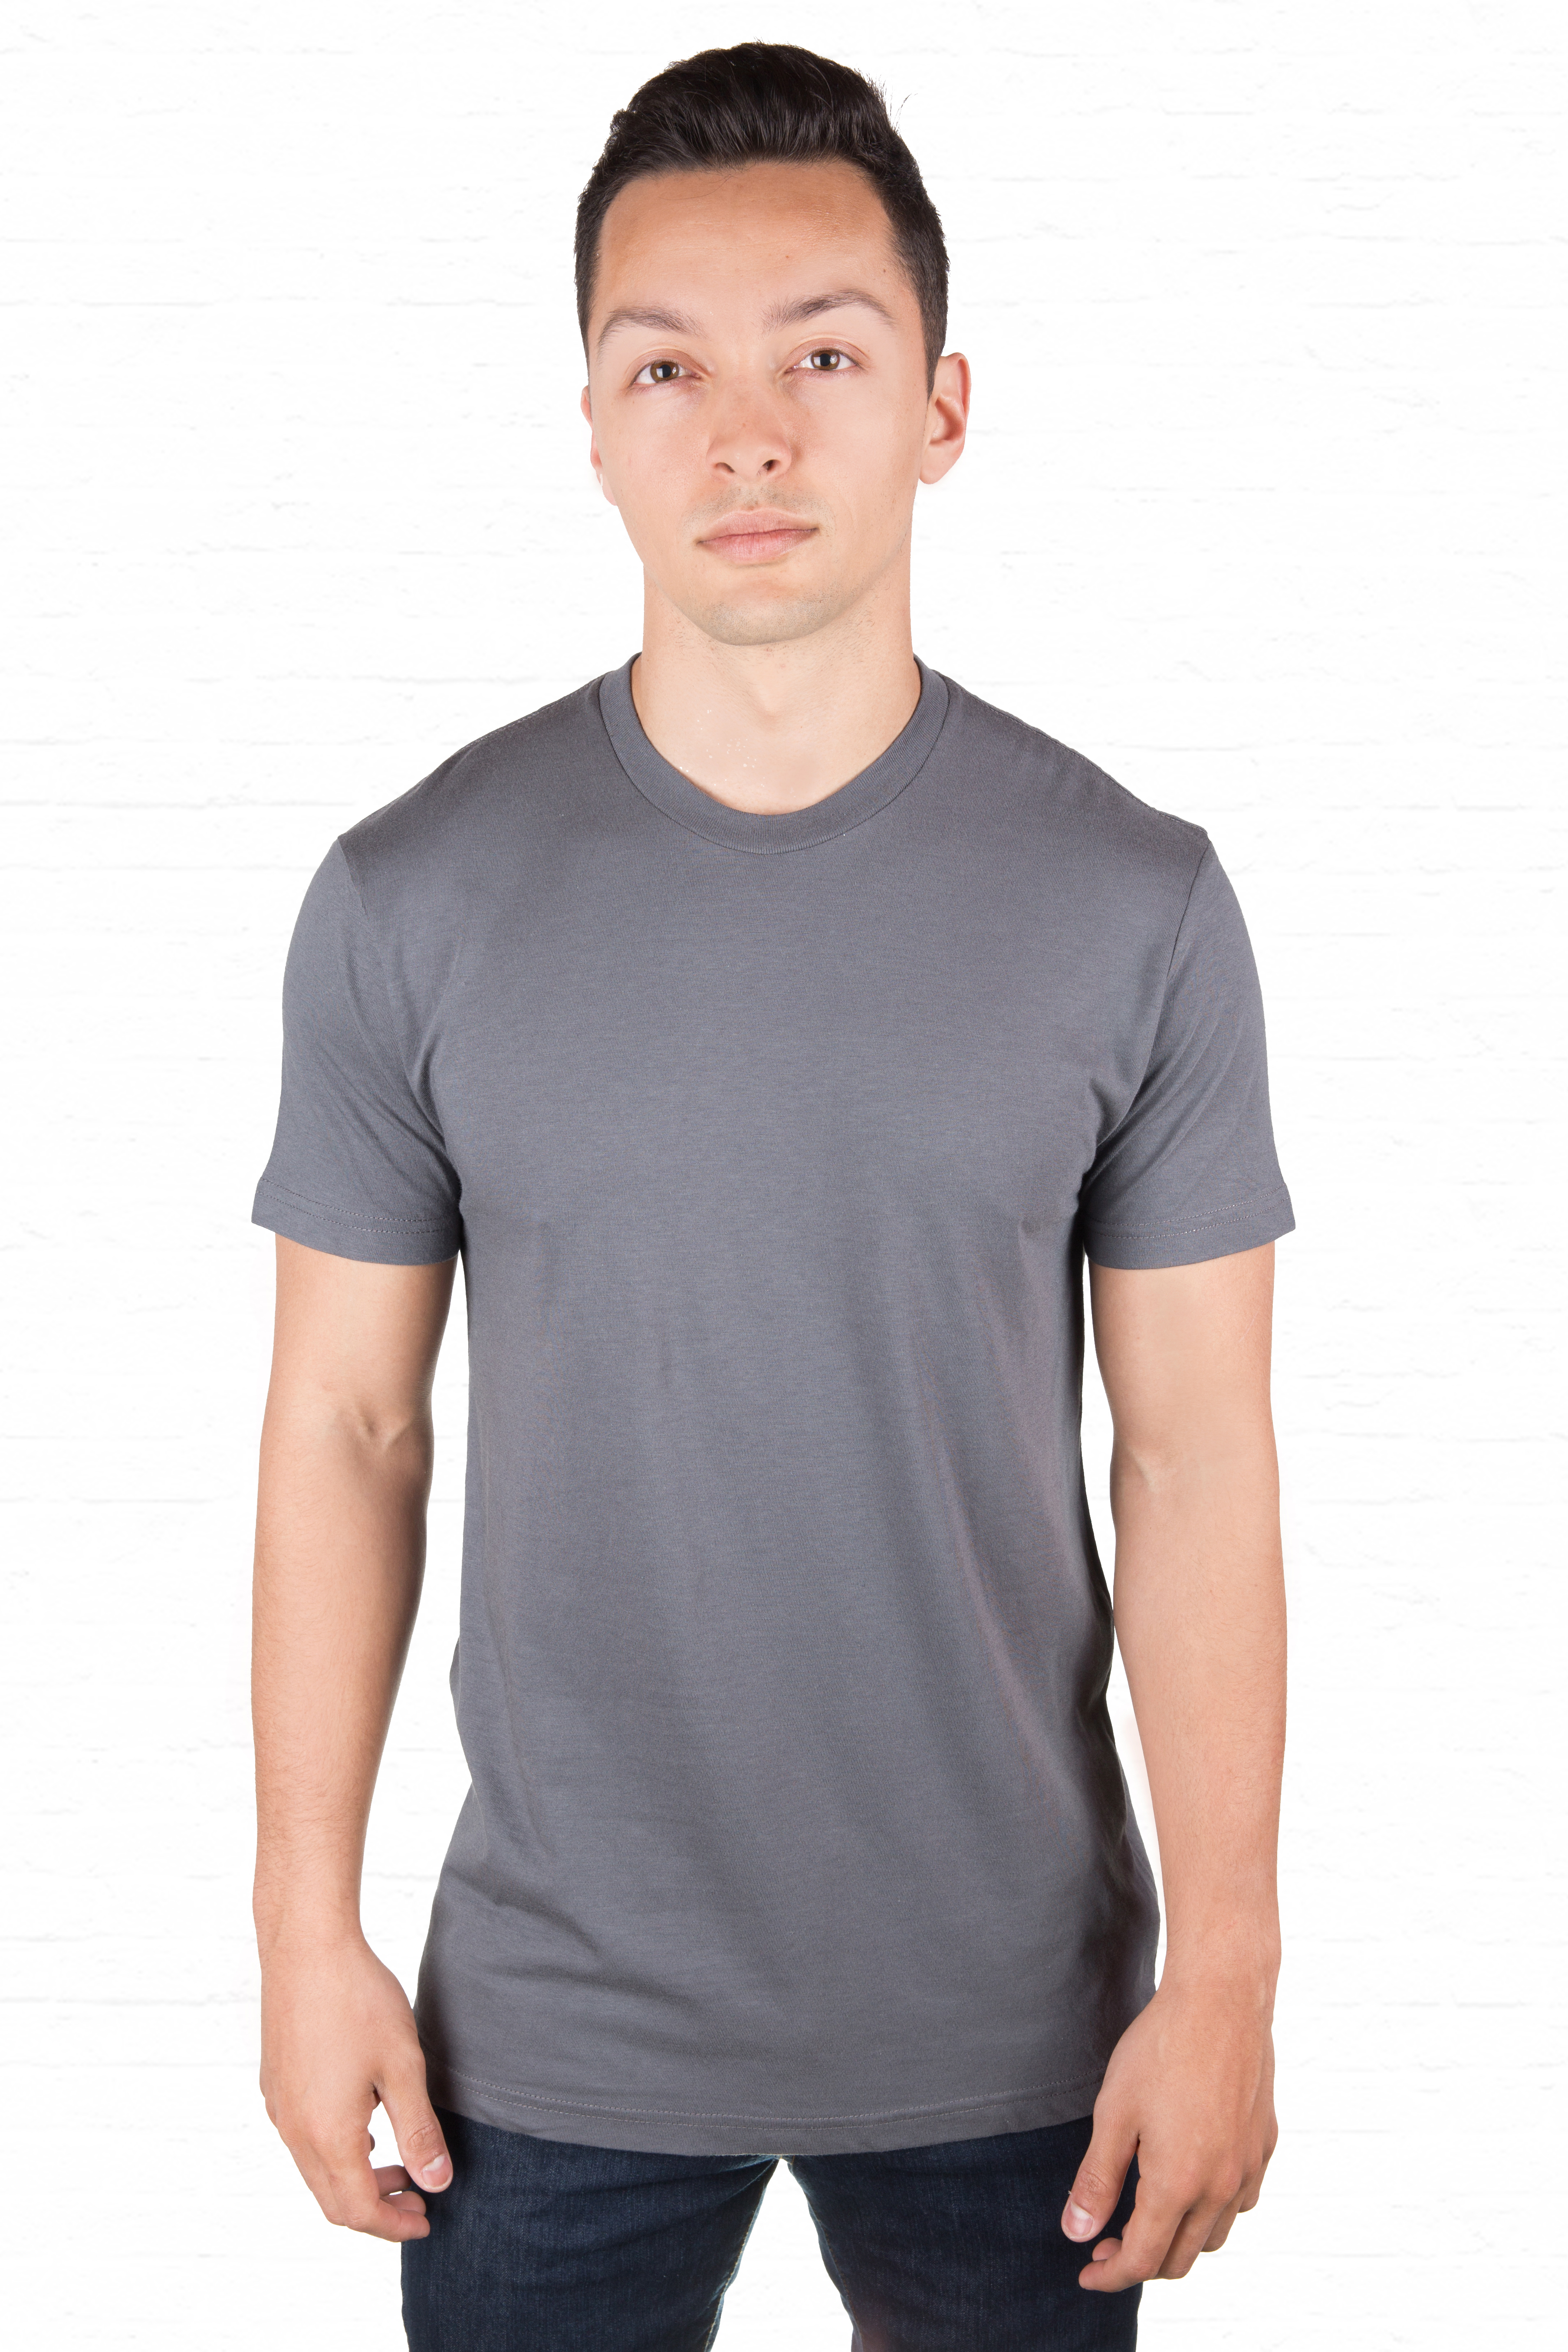 Stilo MC134 - High Quality T-shirts